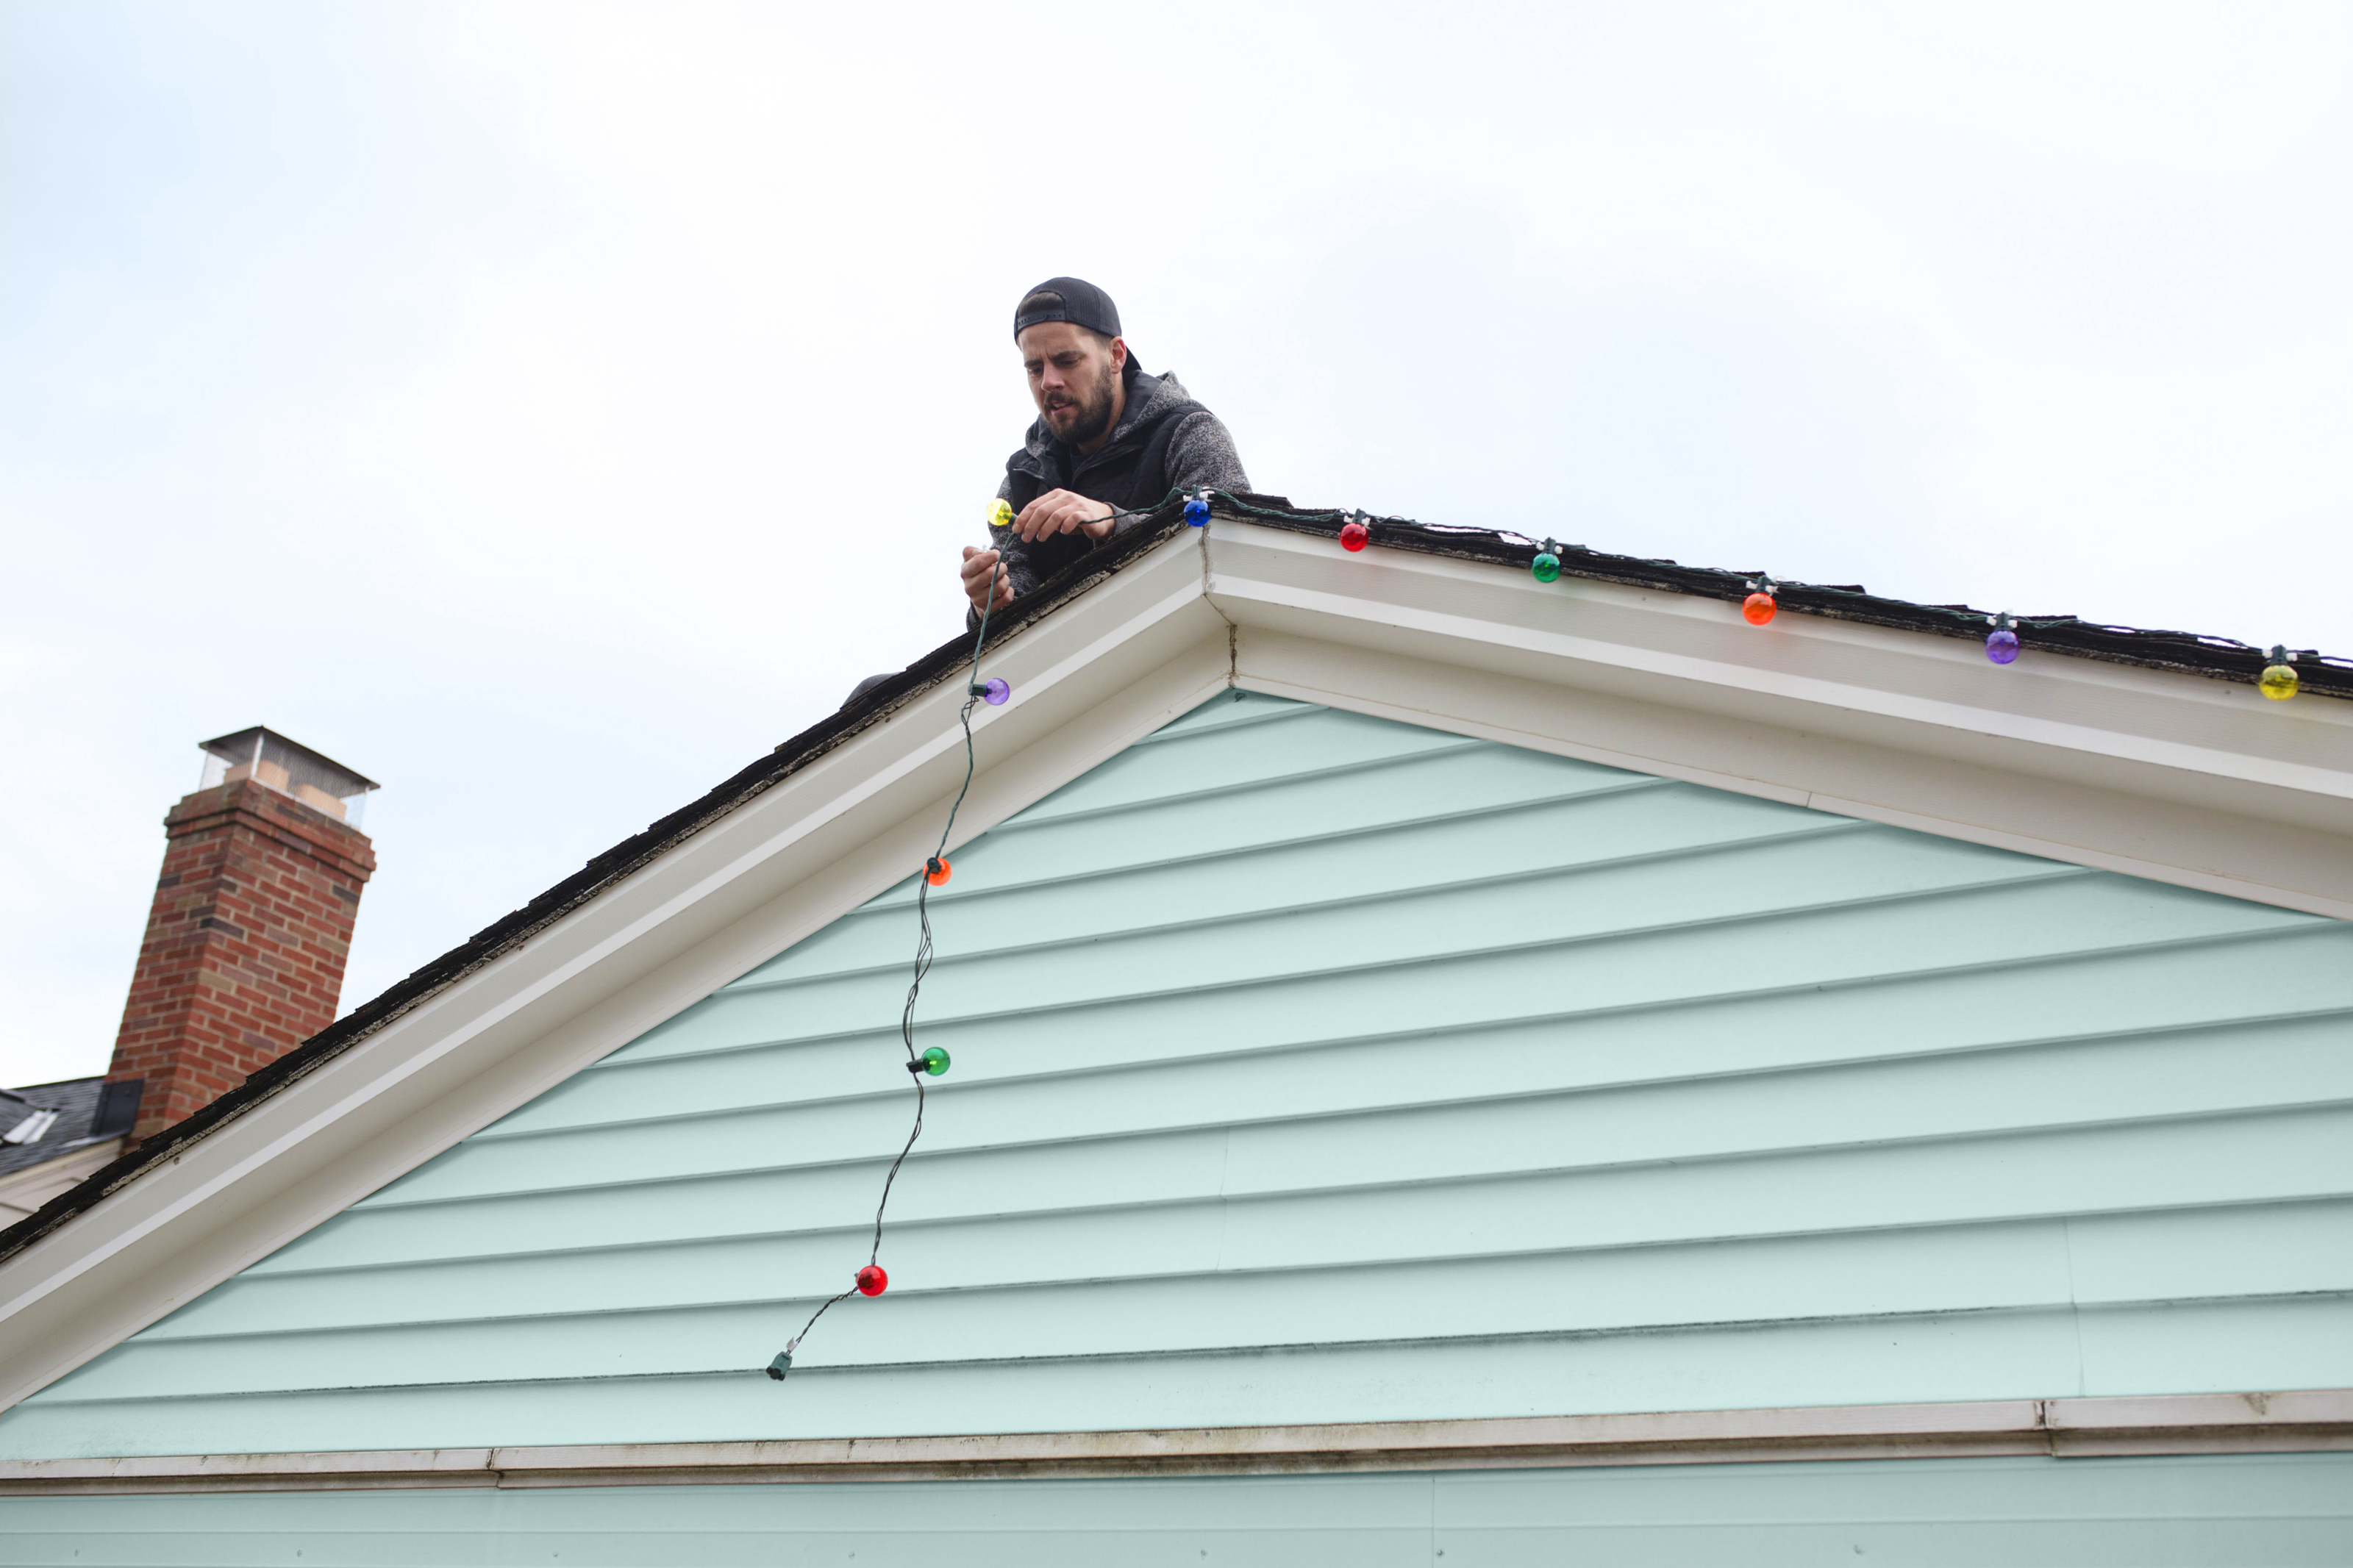 Man on roof hanging string of multi-colored Christmas lights